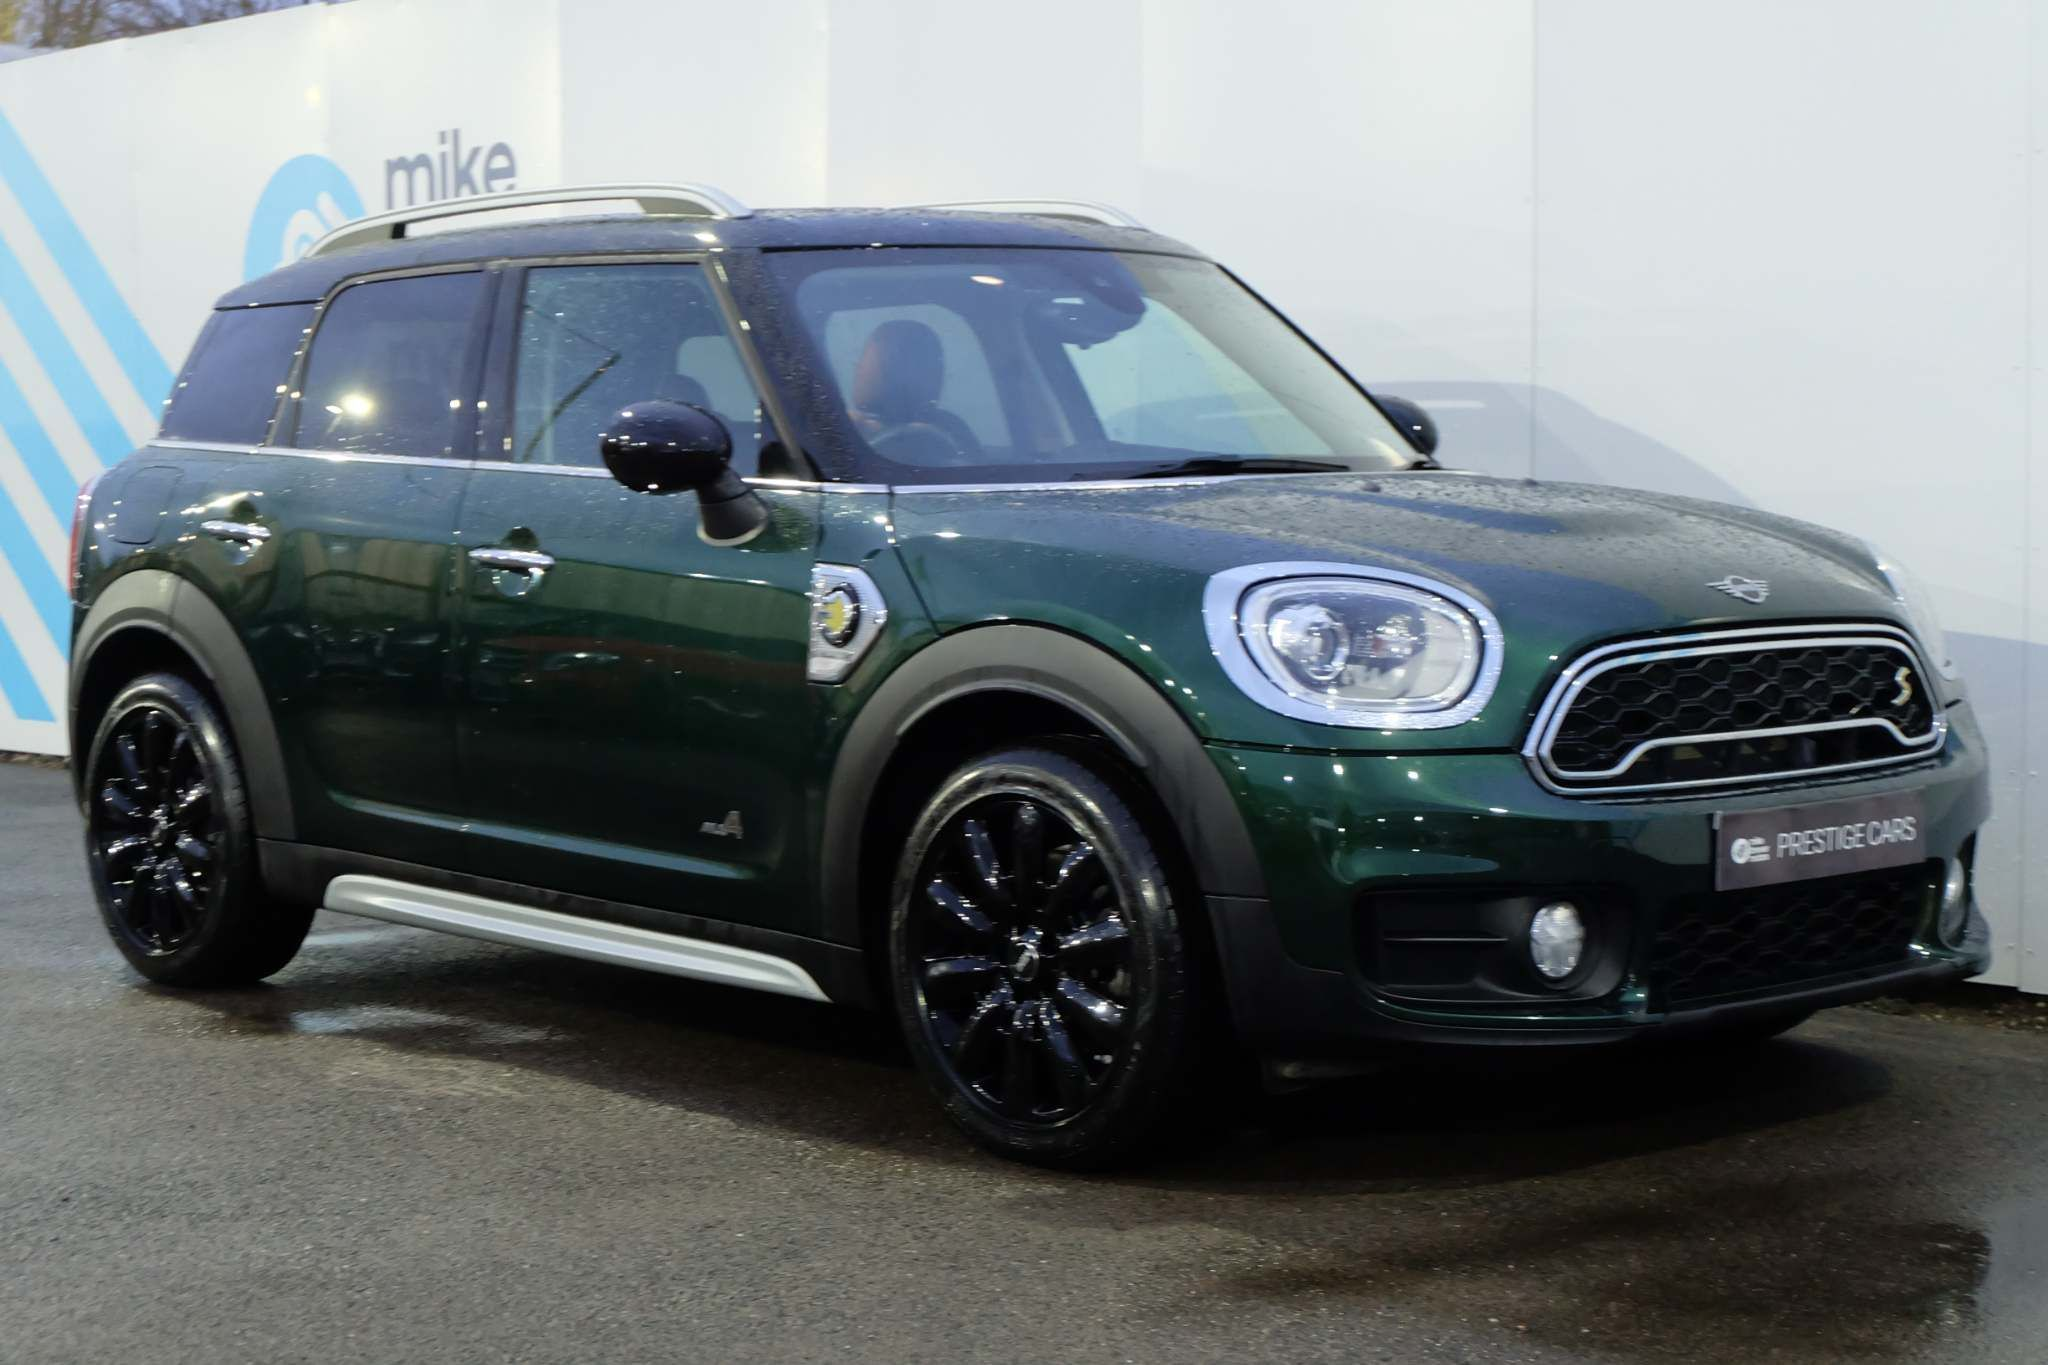 Used MINI Countryman 1.5 7.6kwh Cooper Se Auto All4 (s/s) 5dr